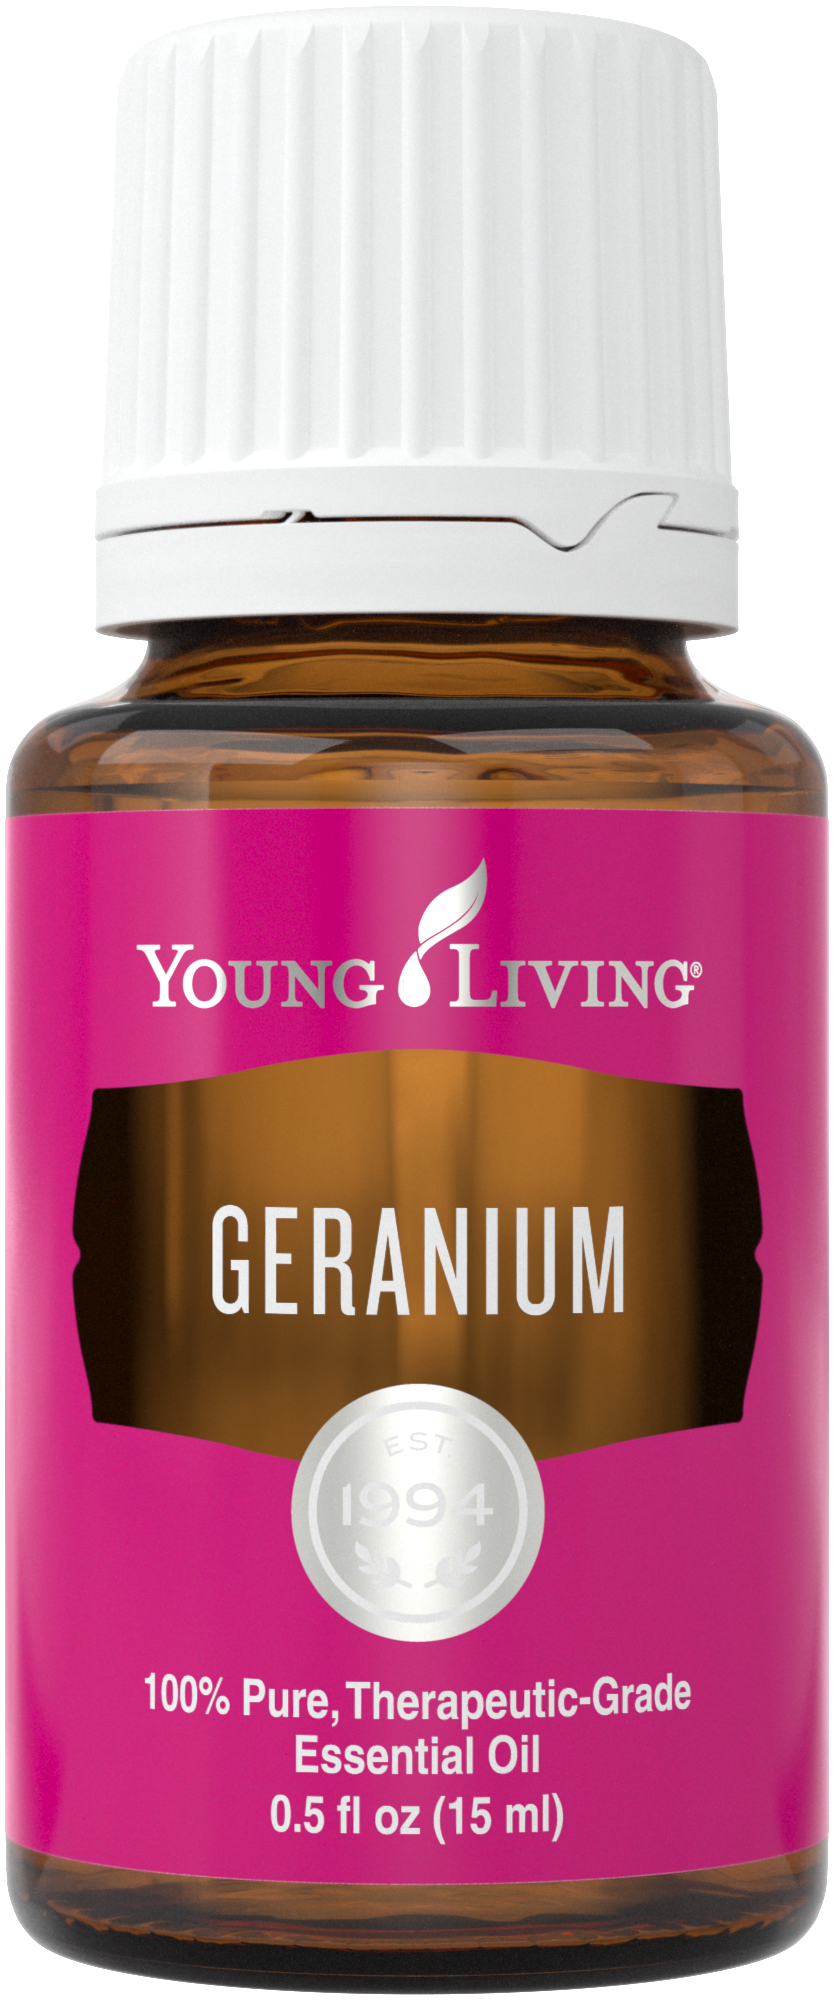 Geranium essential oil uses | Young Living